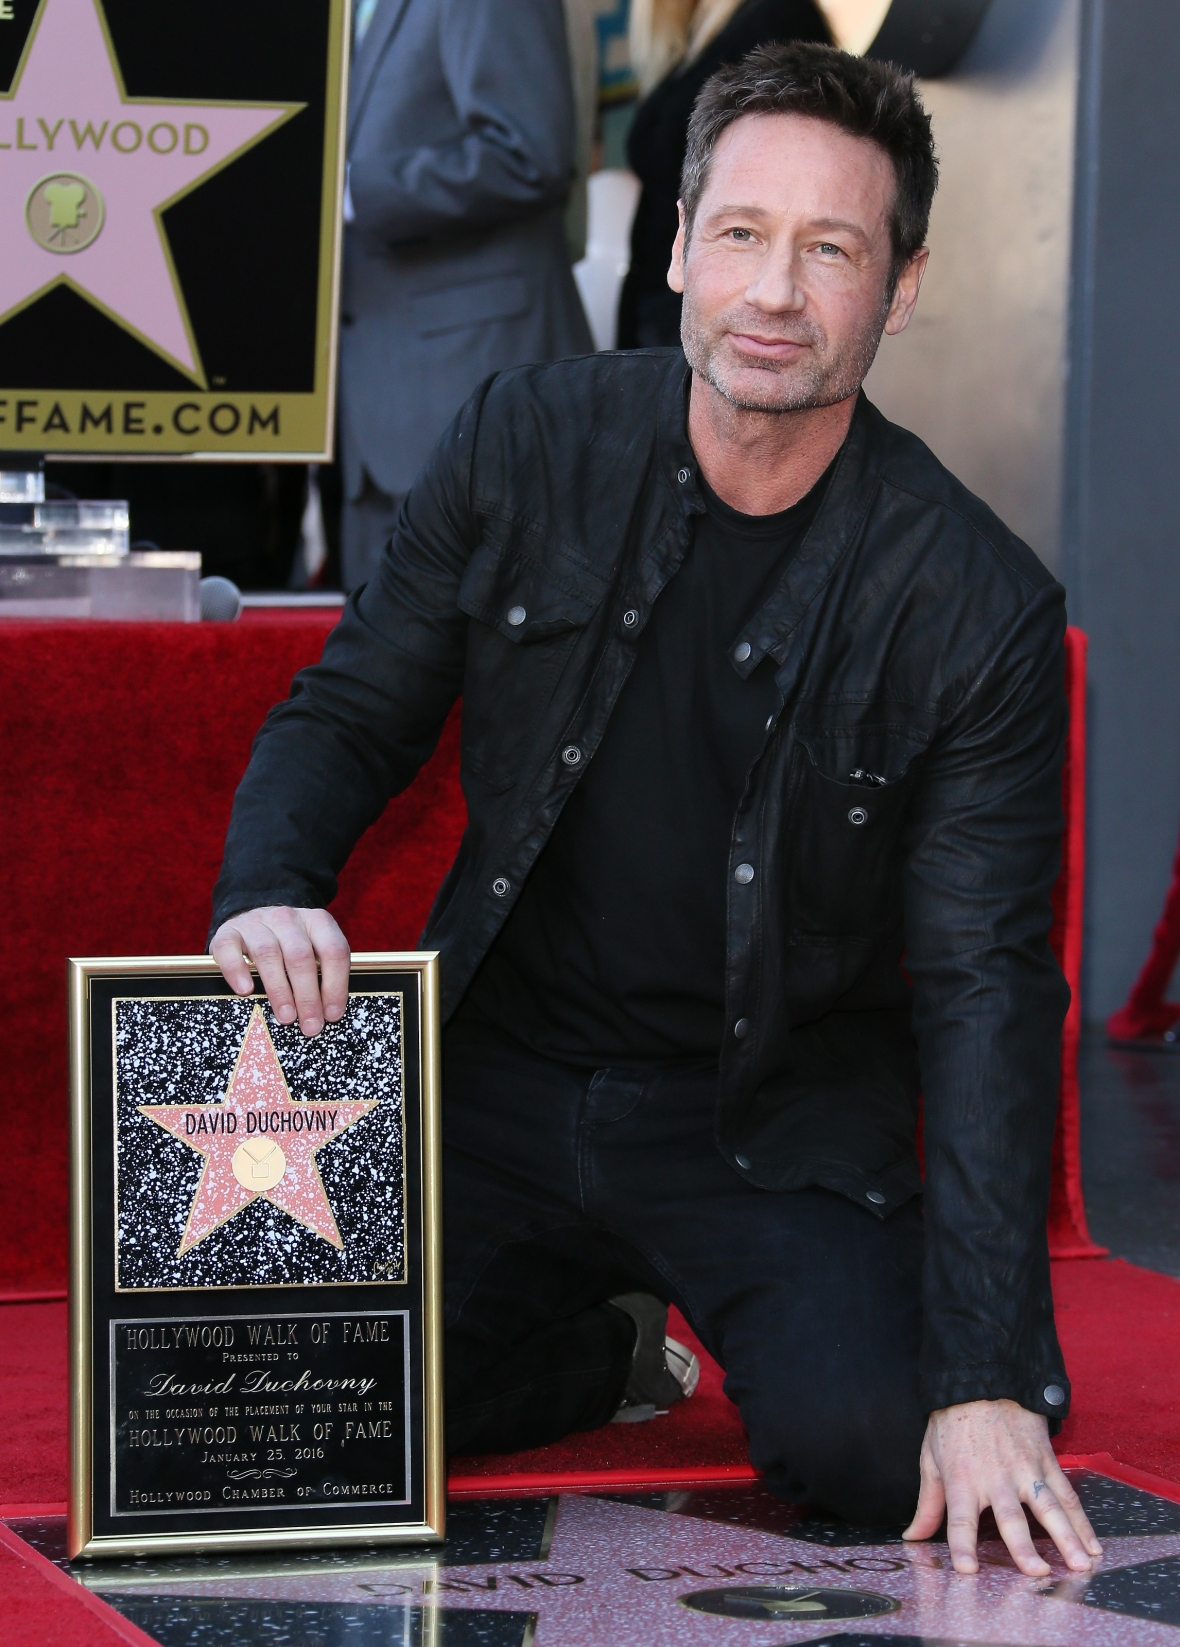 david duchovny getty images